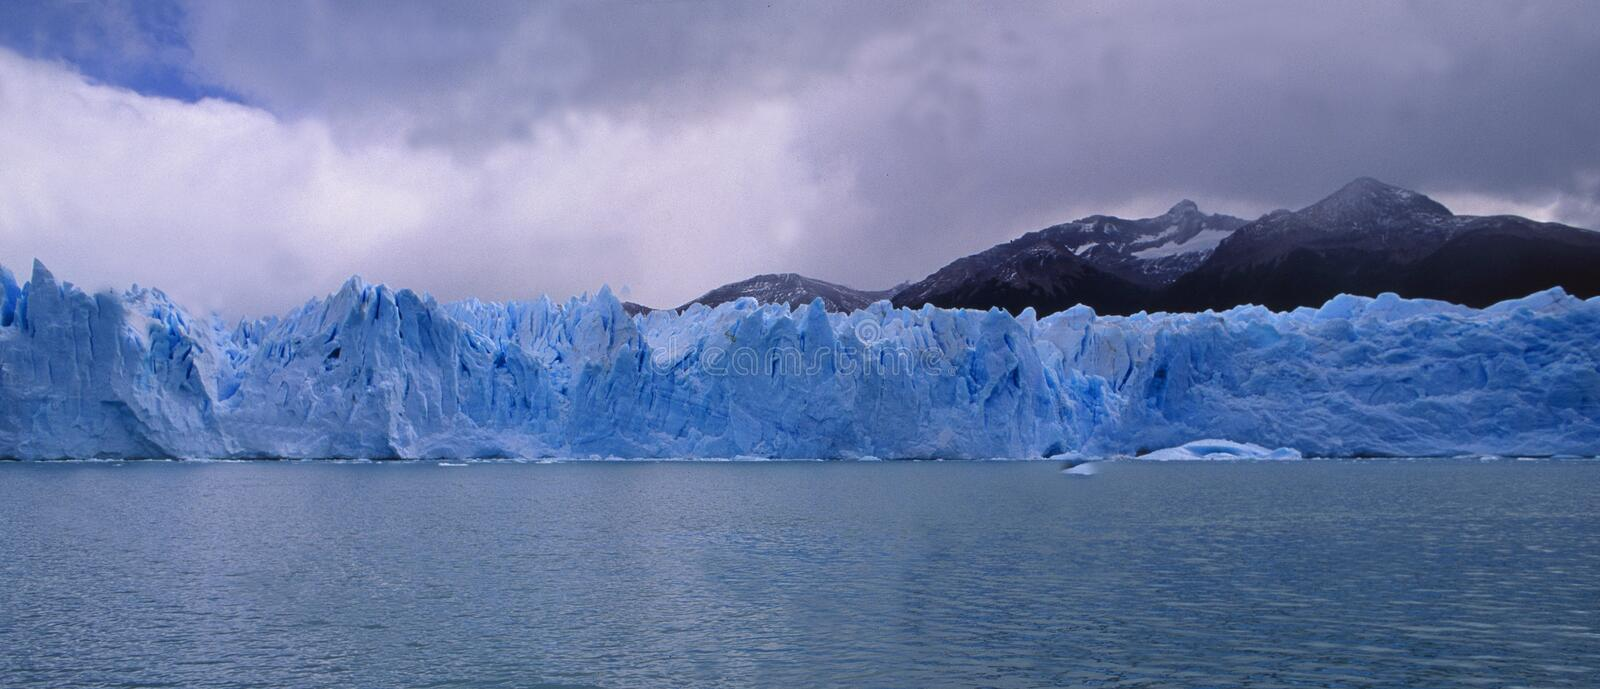 Argentina: The Glacier Perito Moreno at Lago Argentino in Patagonia. Is one of the very few around the world which is not melting so far stock image